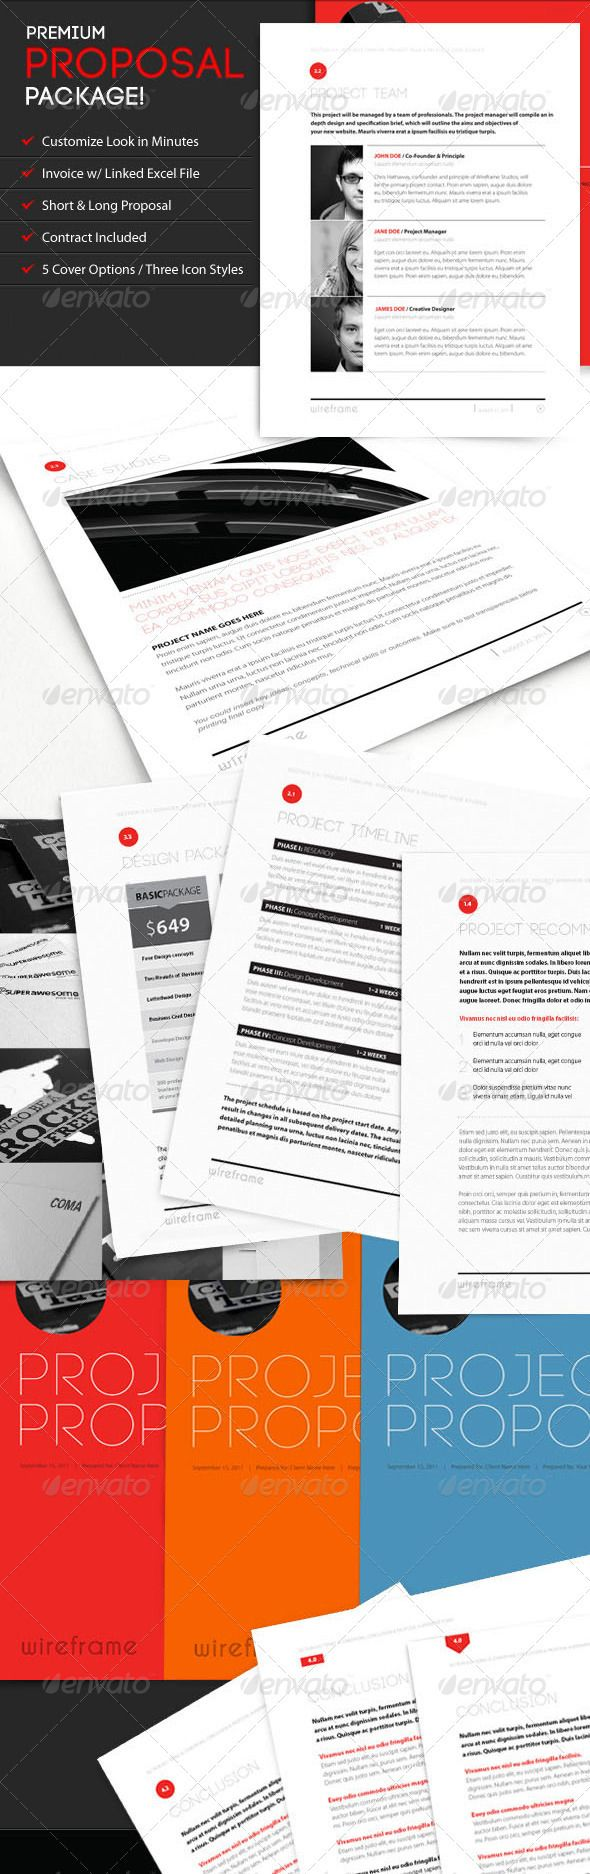 best ideas about s proposal report design project proposal template bundle w invoice contract